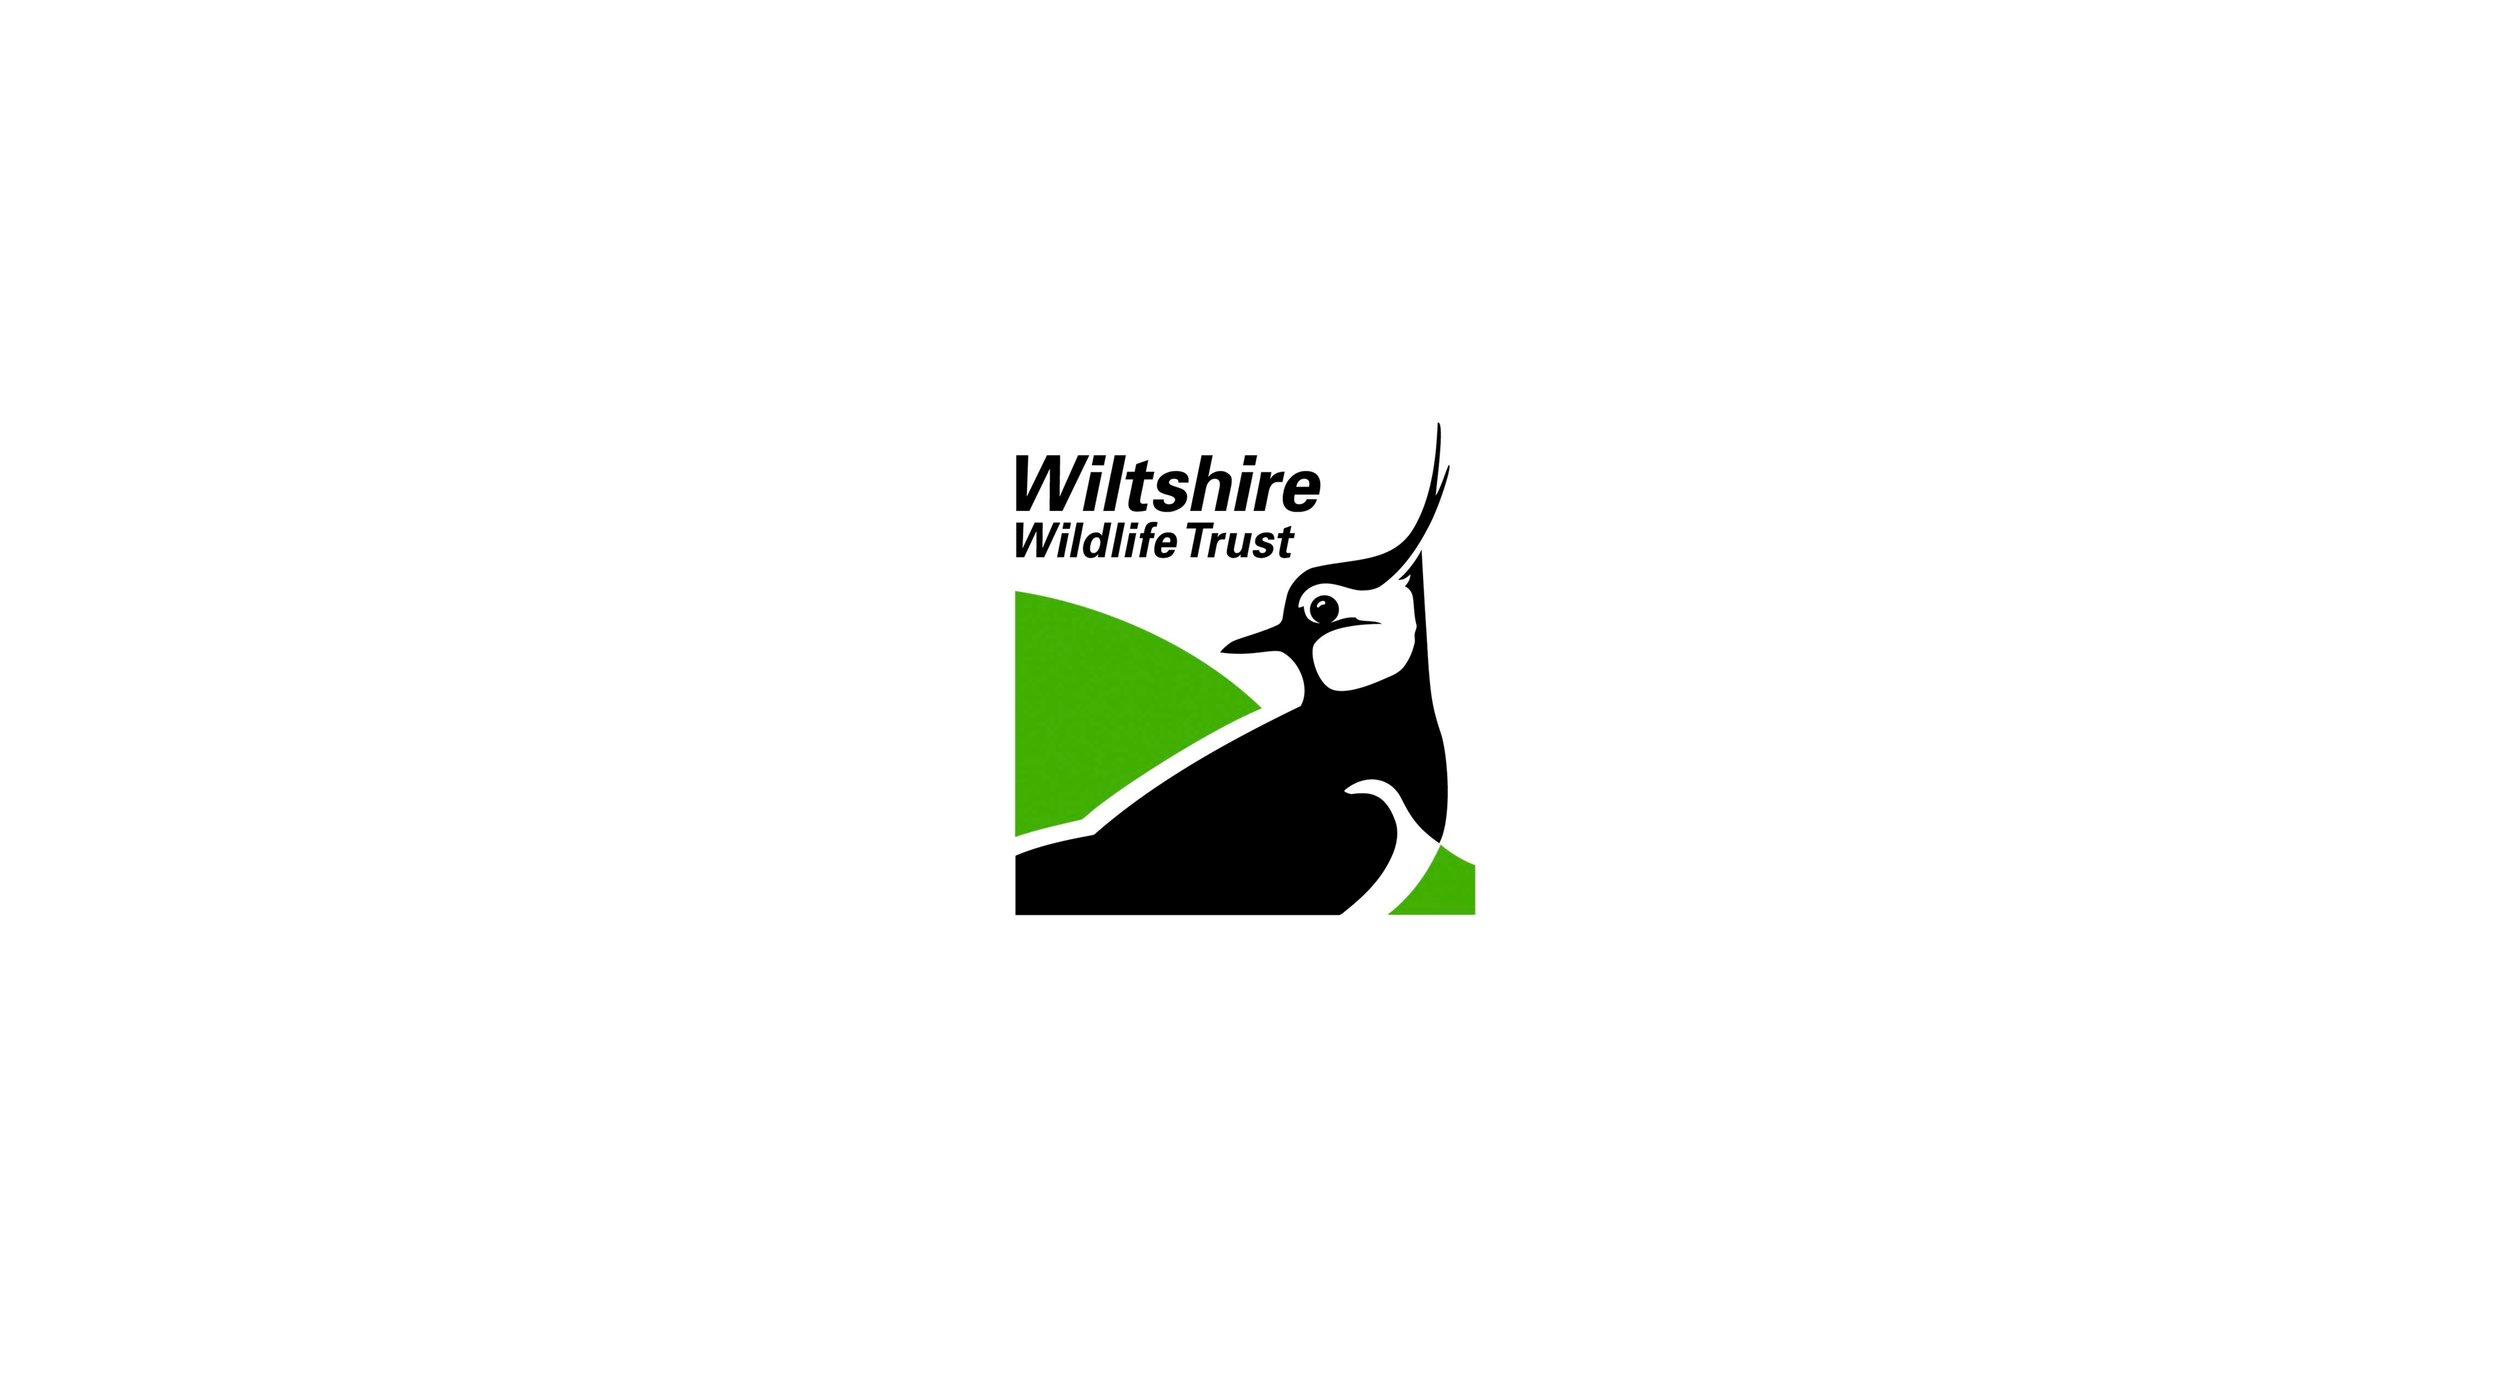 wilts wildlife trust.jpg